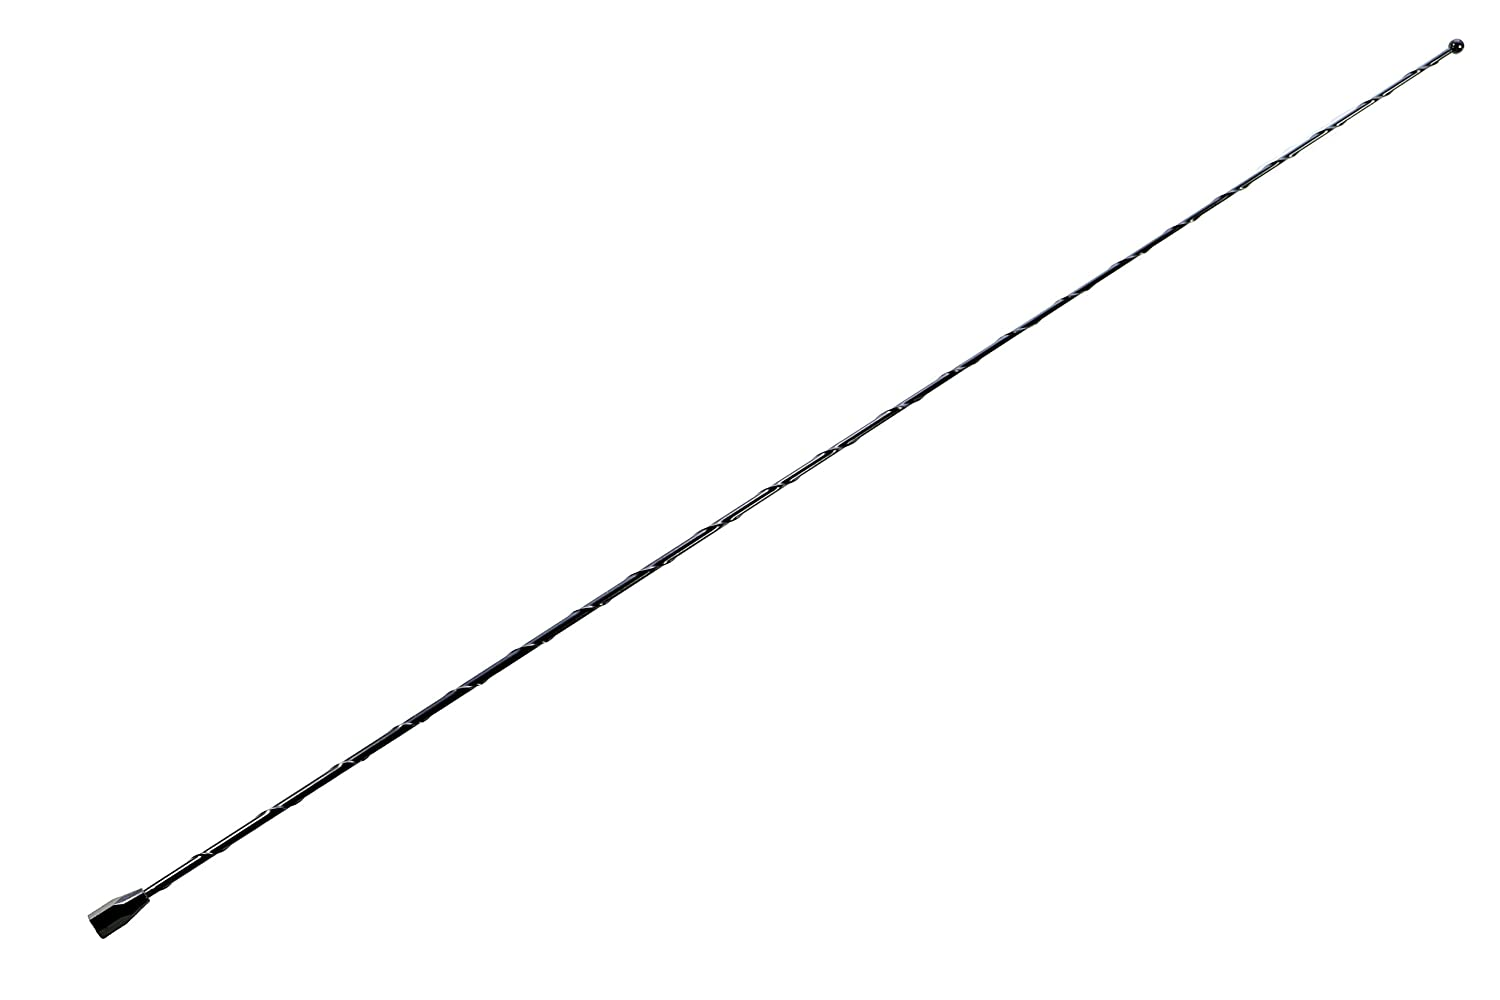 AntennaMastsRus - 12' Black Short Antenna is Compatible with Chevrolet Silverado 1500 (2006-2019) - Spiral Wind Noise Cancellation - Spring Steel Construction